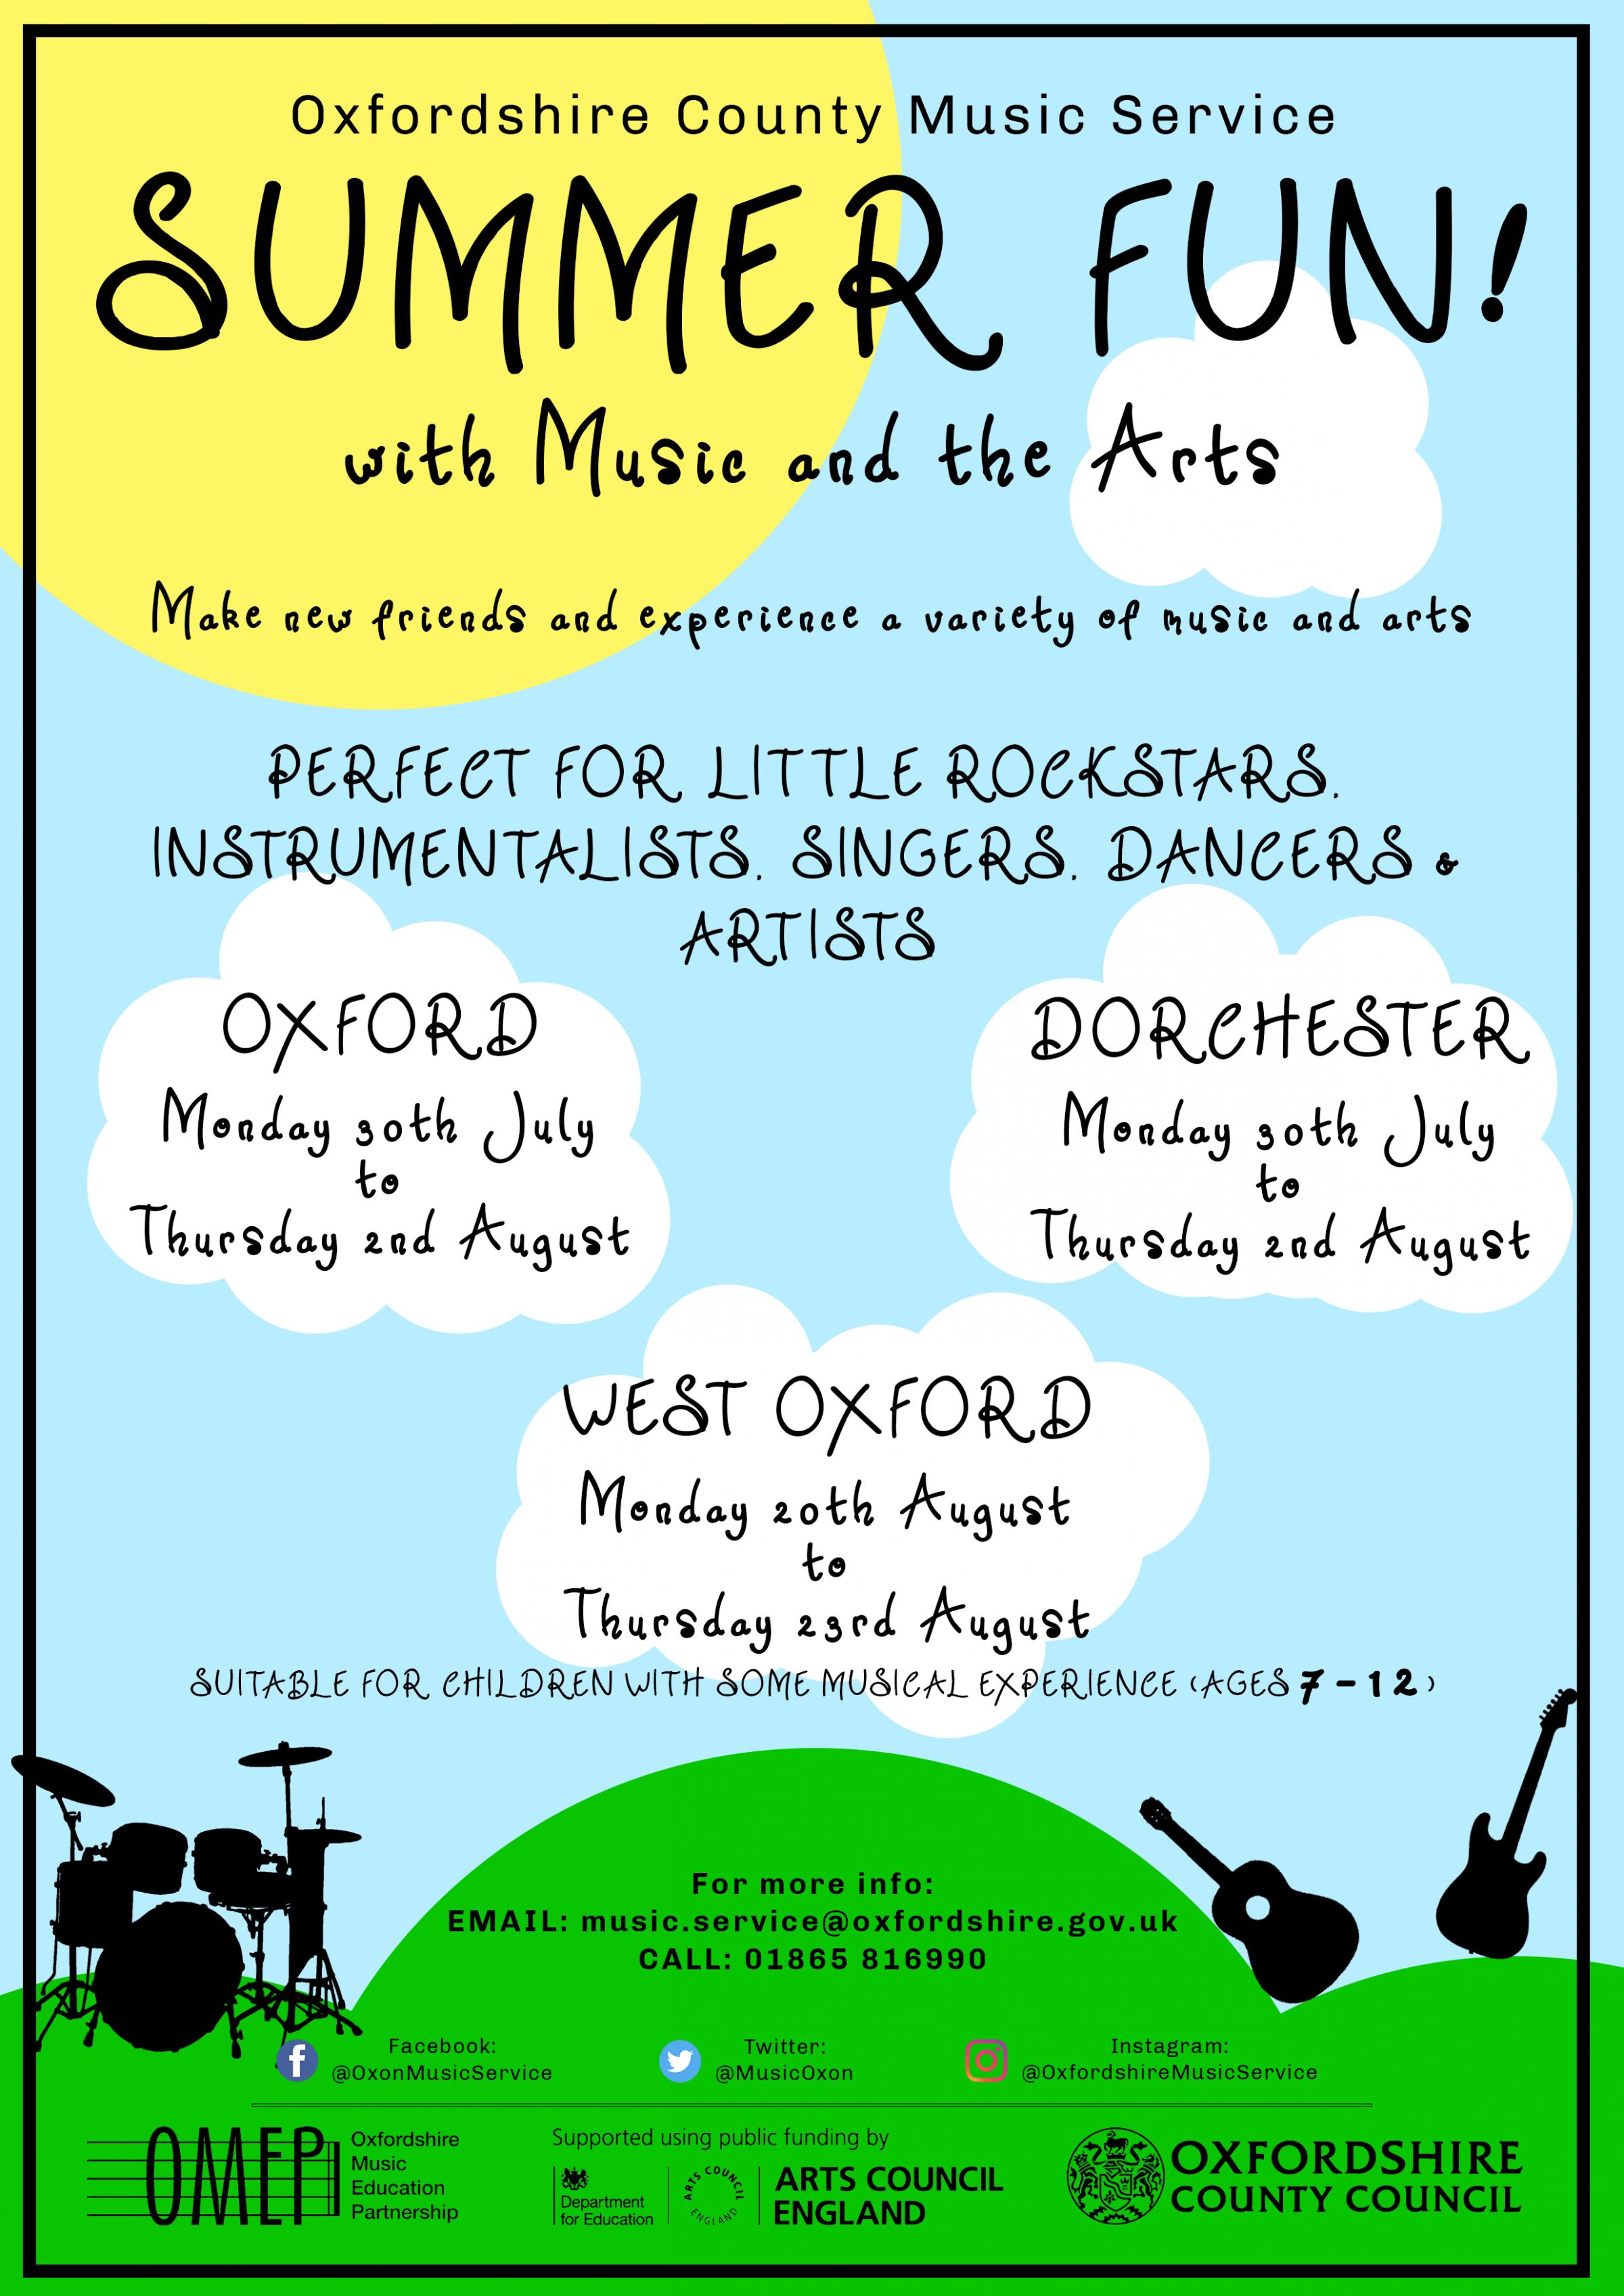 Summer Fun in West Oxford with Music & the Arts